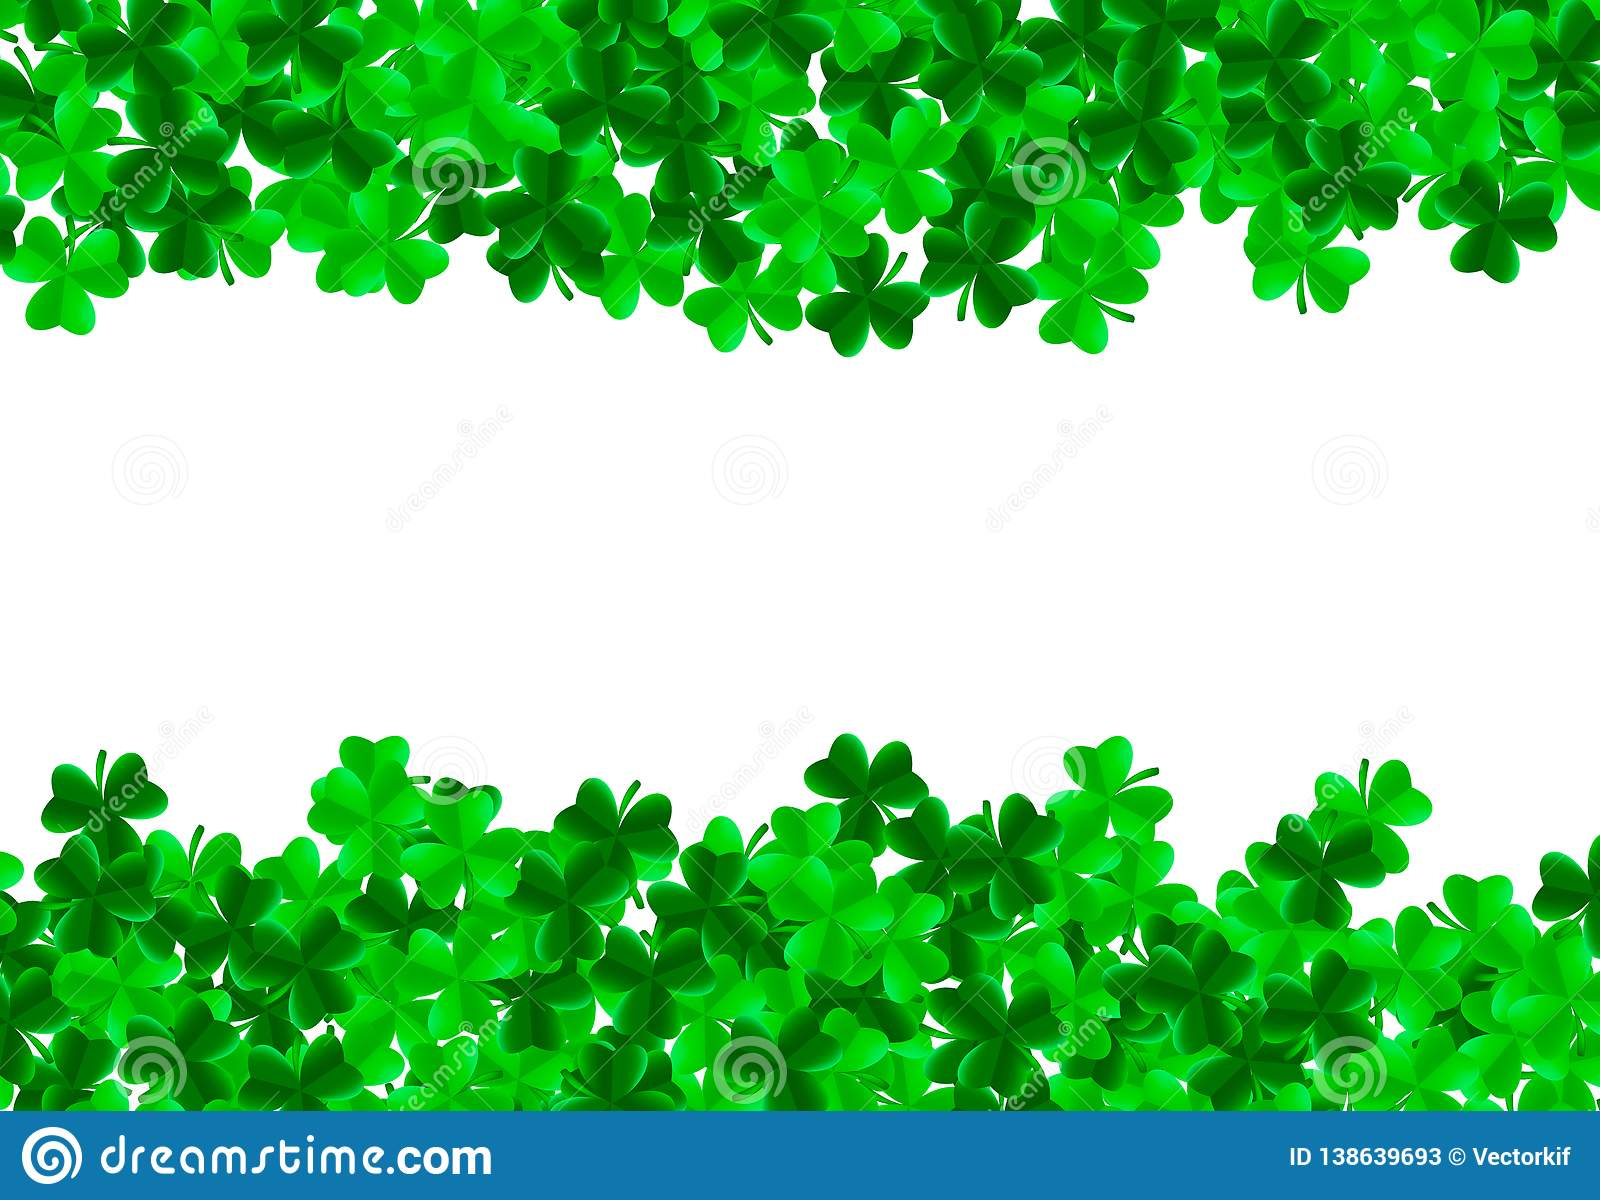 c14c1b0a Saint Patrick day background with green bright leaves of trefoil clover and  white space in center. Luck and success concept. Vector illustration